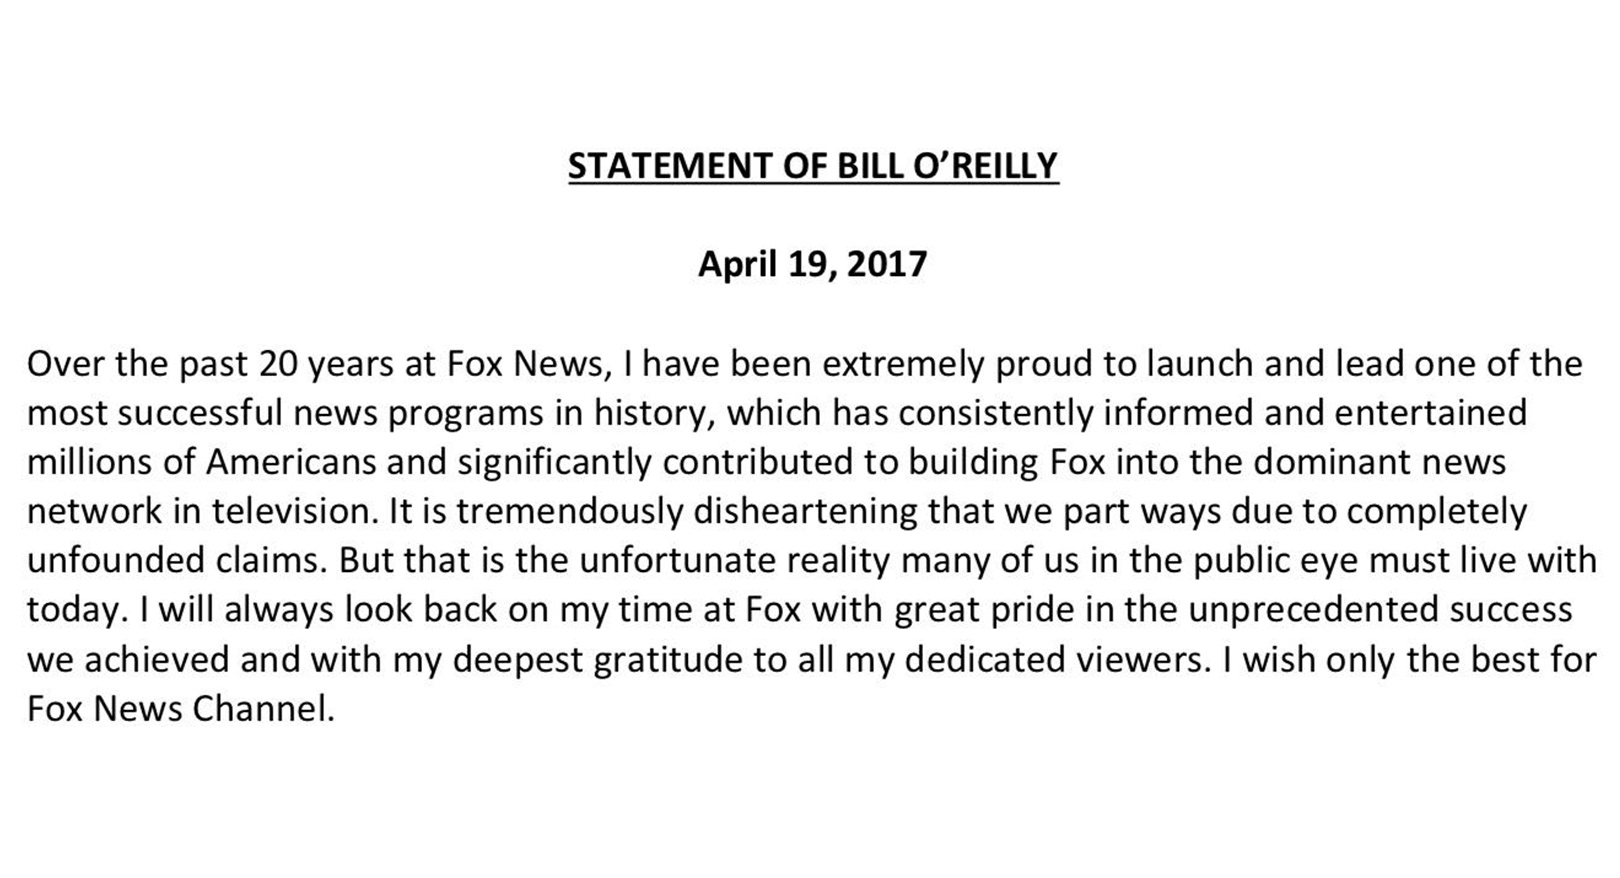 bill_oreilly_statement